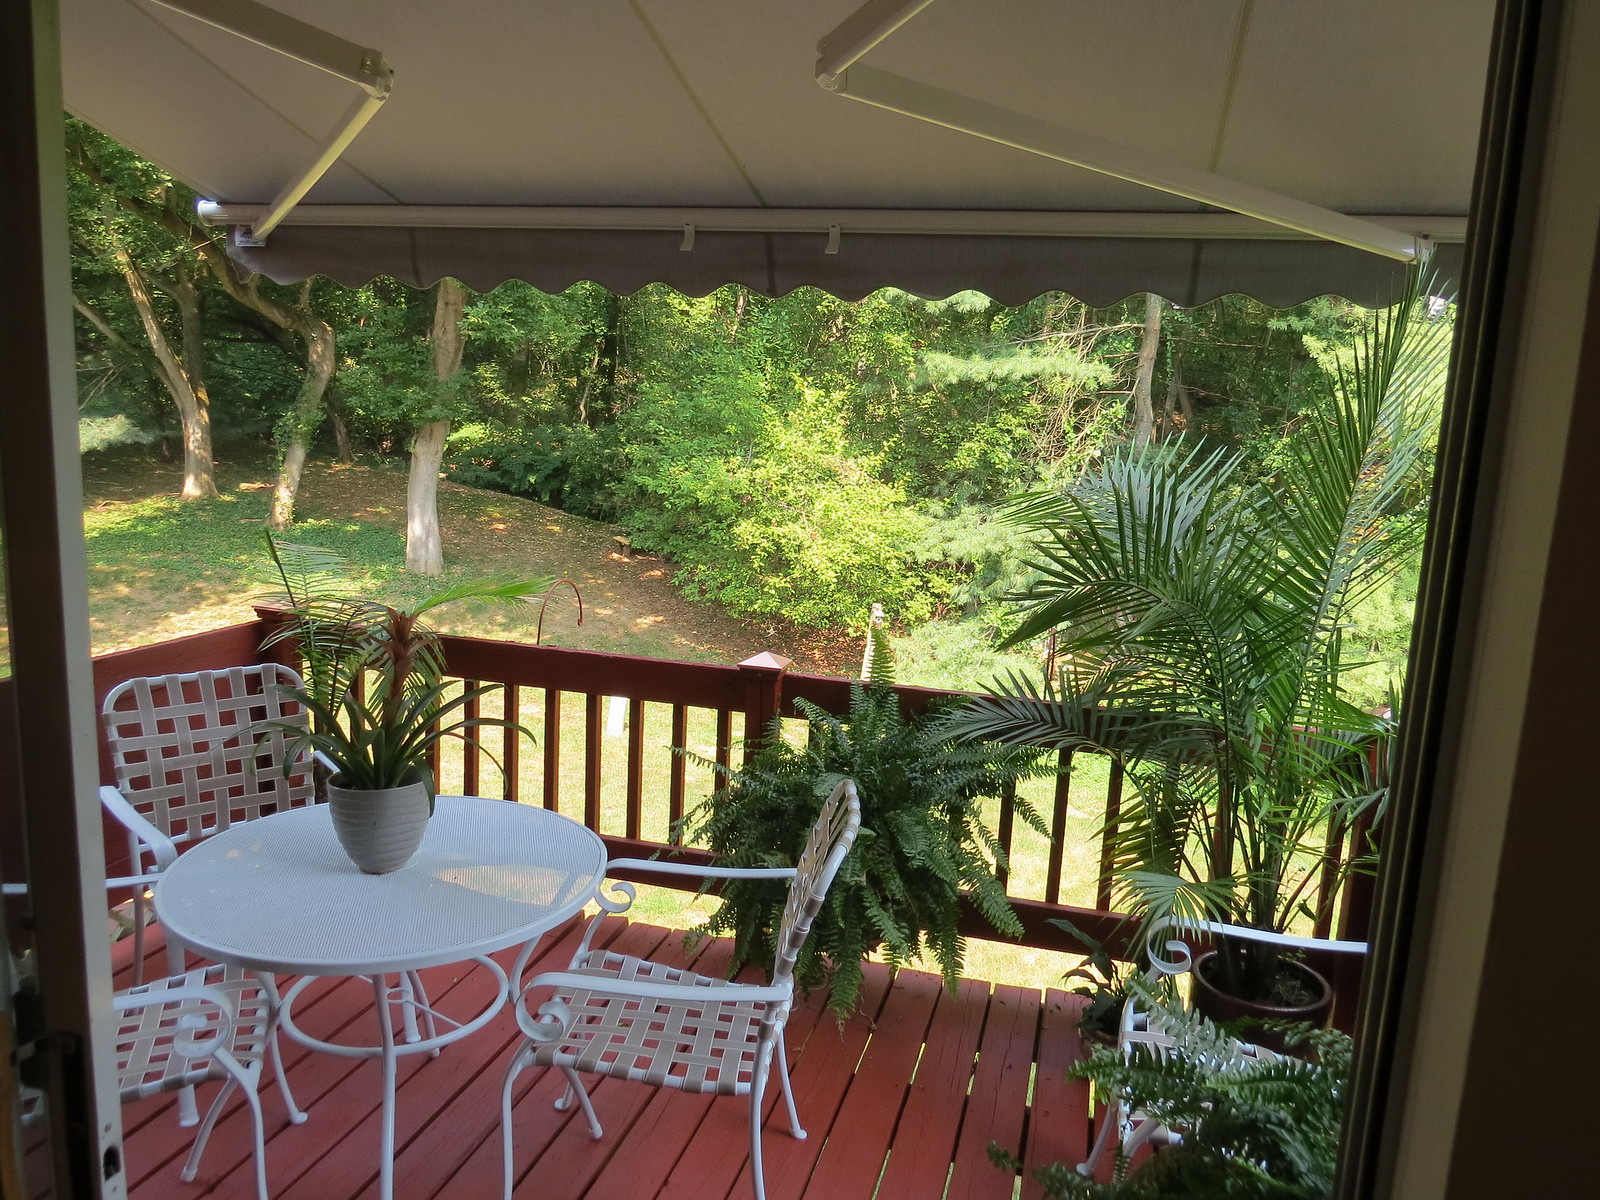 Townhouse-Retractable-Awning